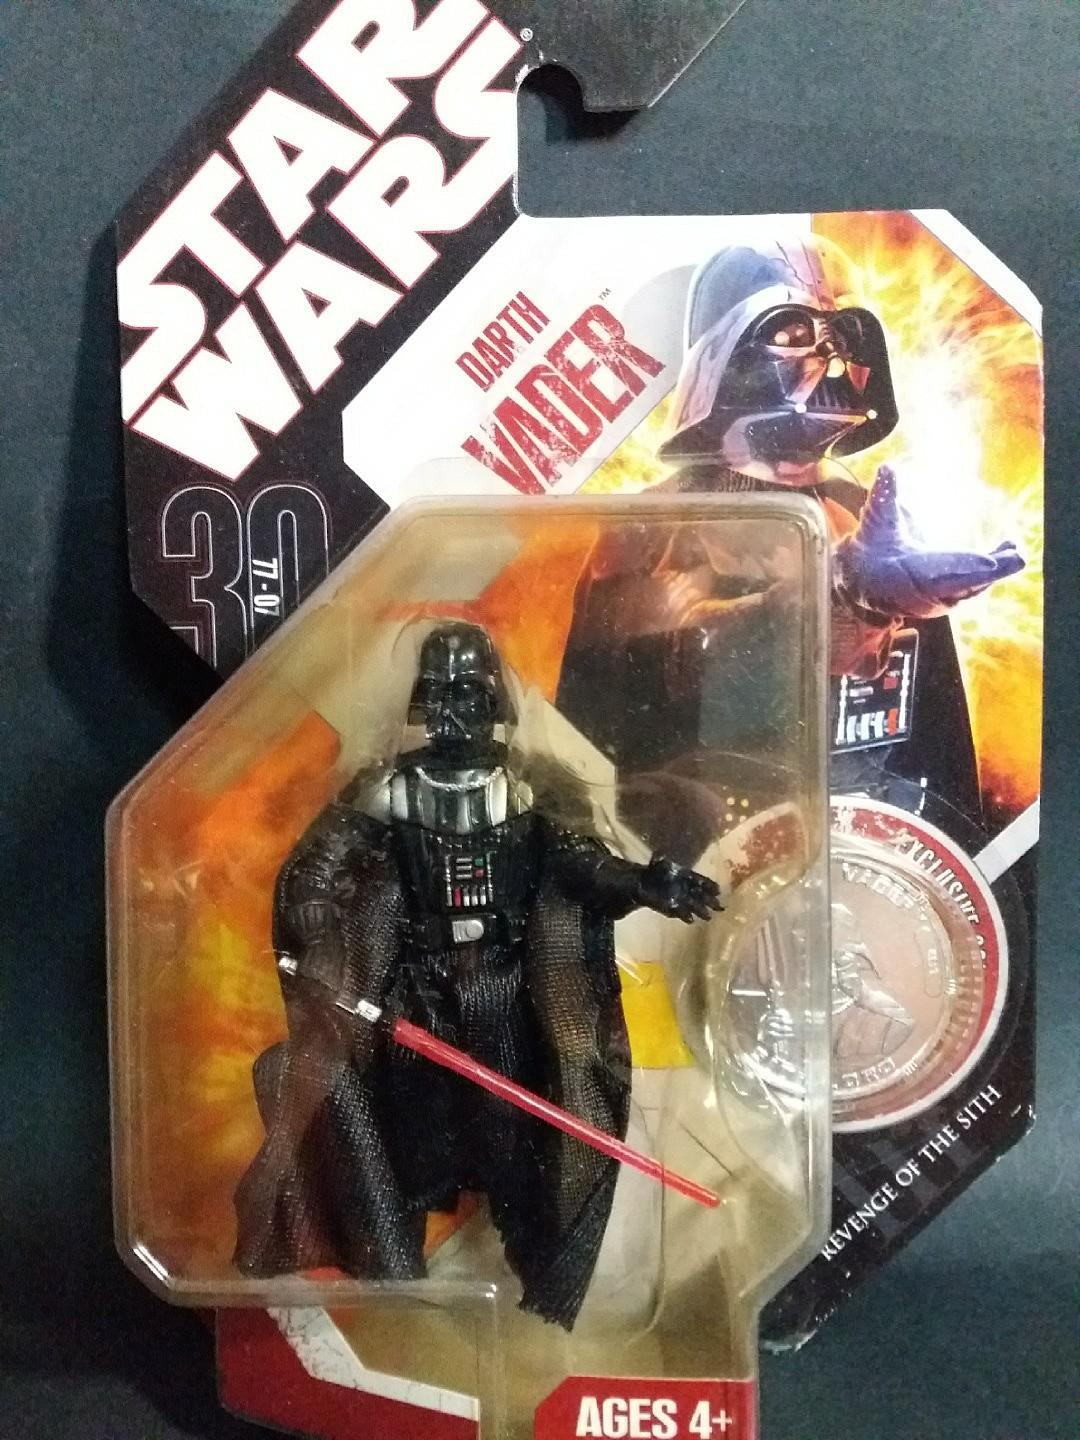 Star Wars Darth Vader Revenge Of The Sith Toys Games Others On Carousell